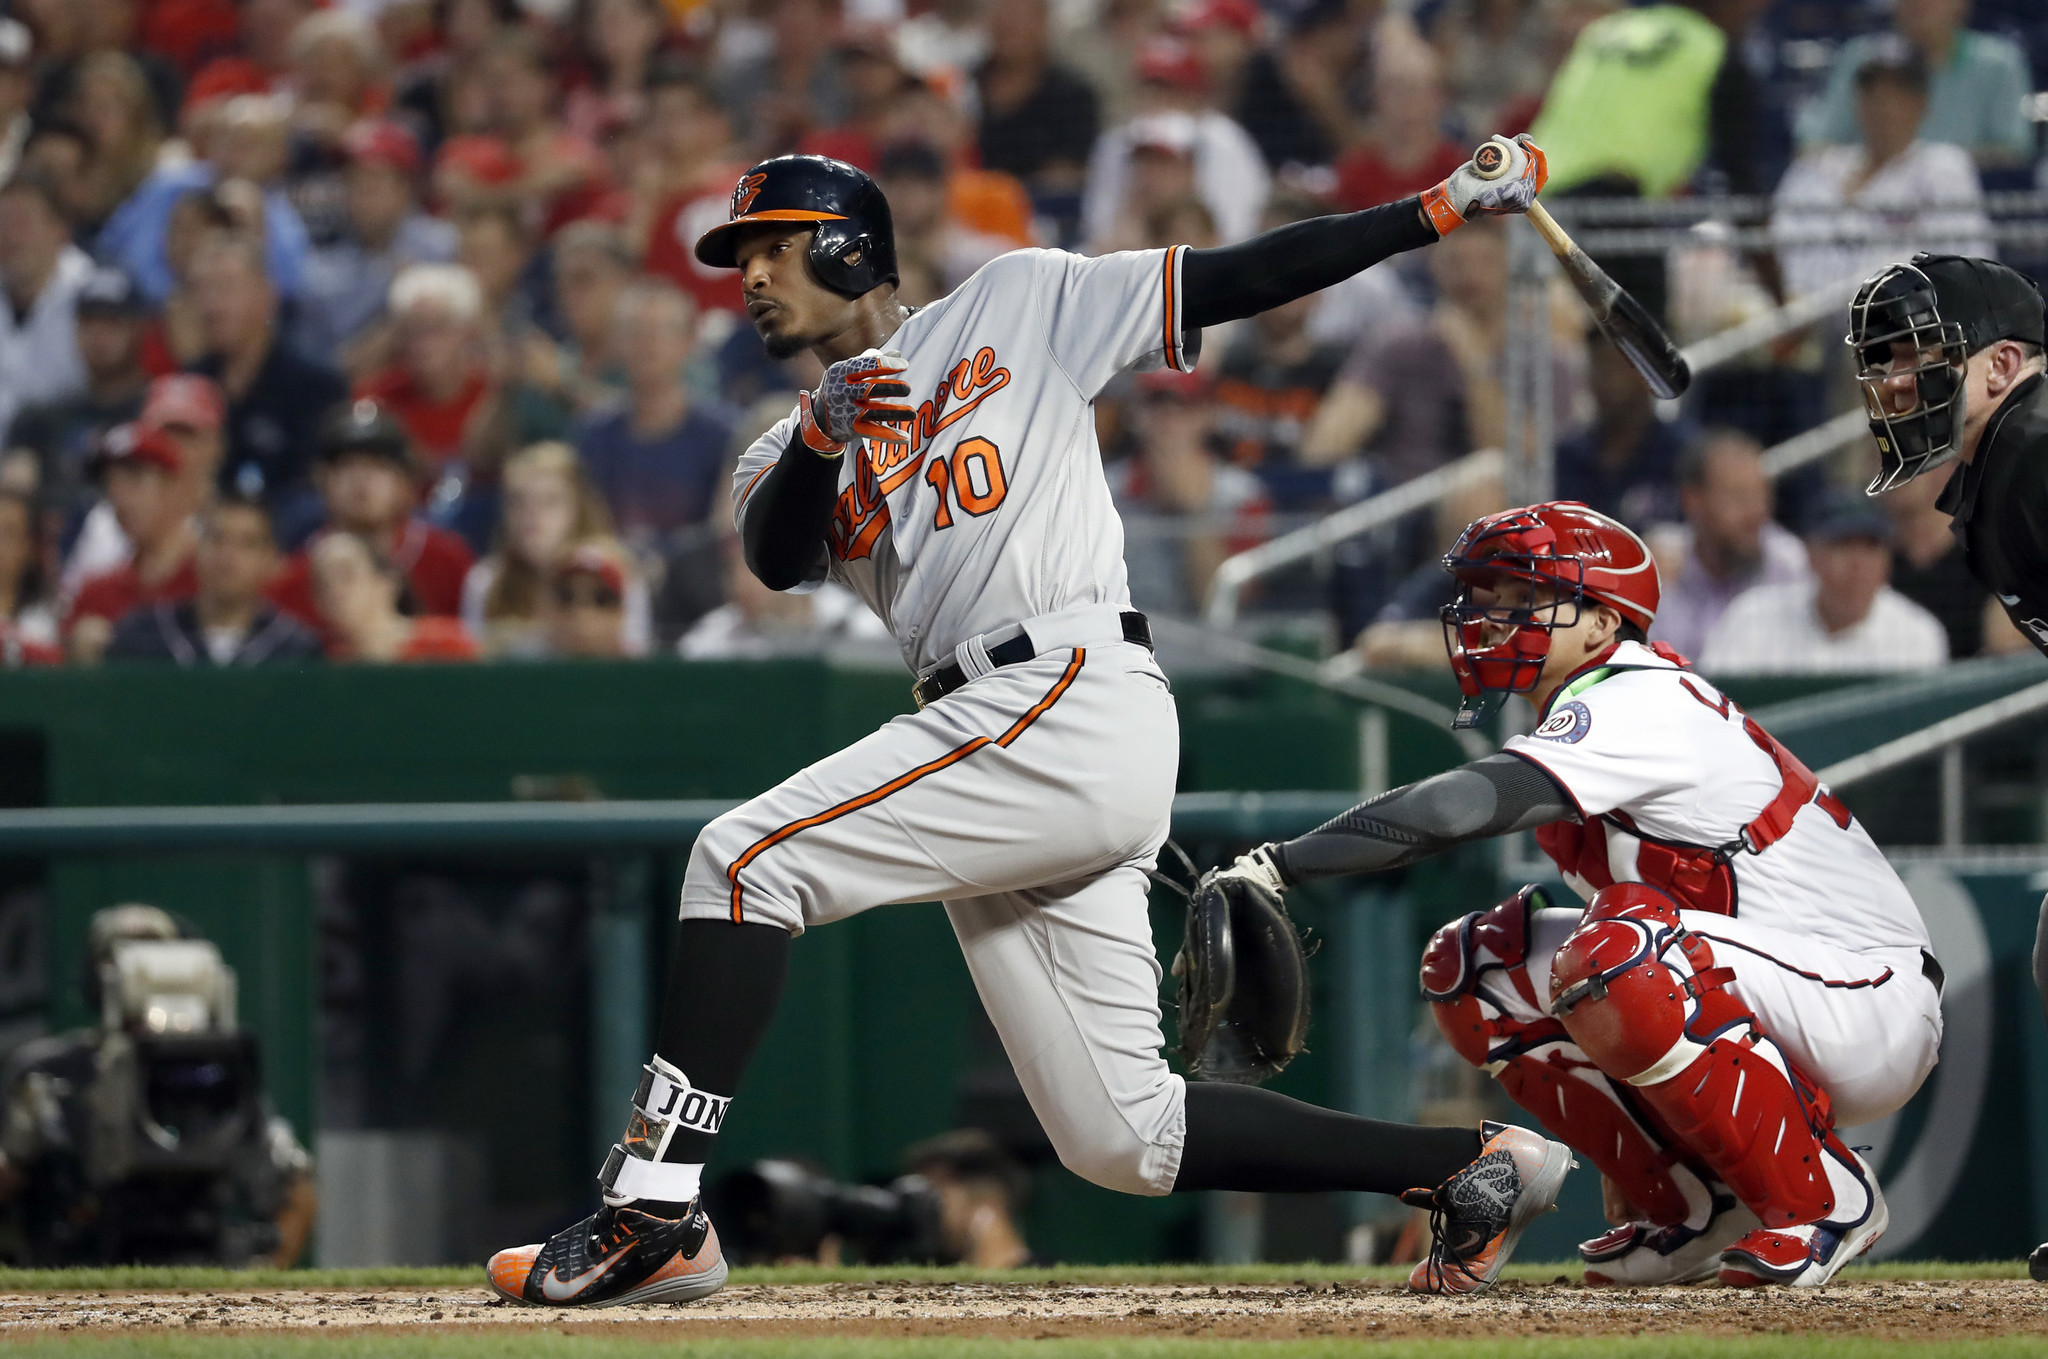 Bal-orioles-center-fielder-adam-jones-leaves-game-in-ninth-with-cramping-but-says-he-will-play-friday-20160825